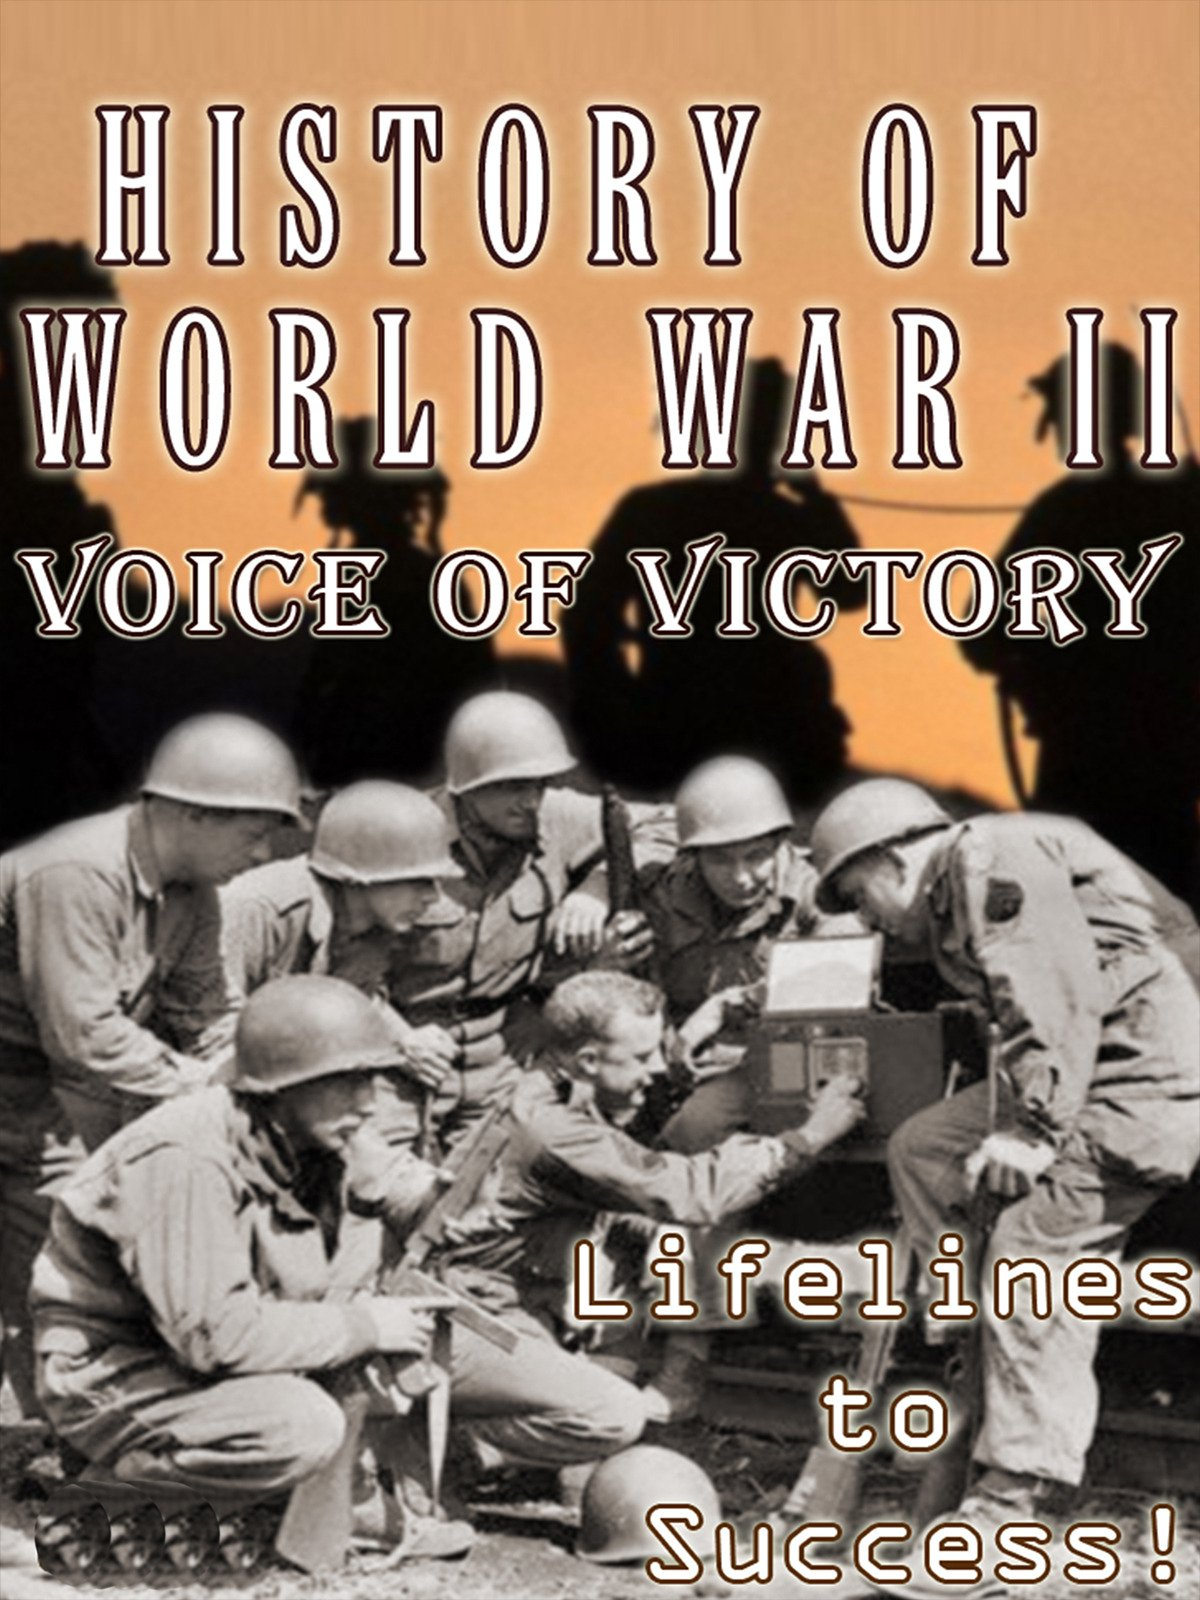 History of World War II - Voice of Victory - Lifelines to Success! on Amazon Prime Video UK